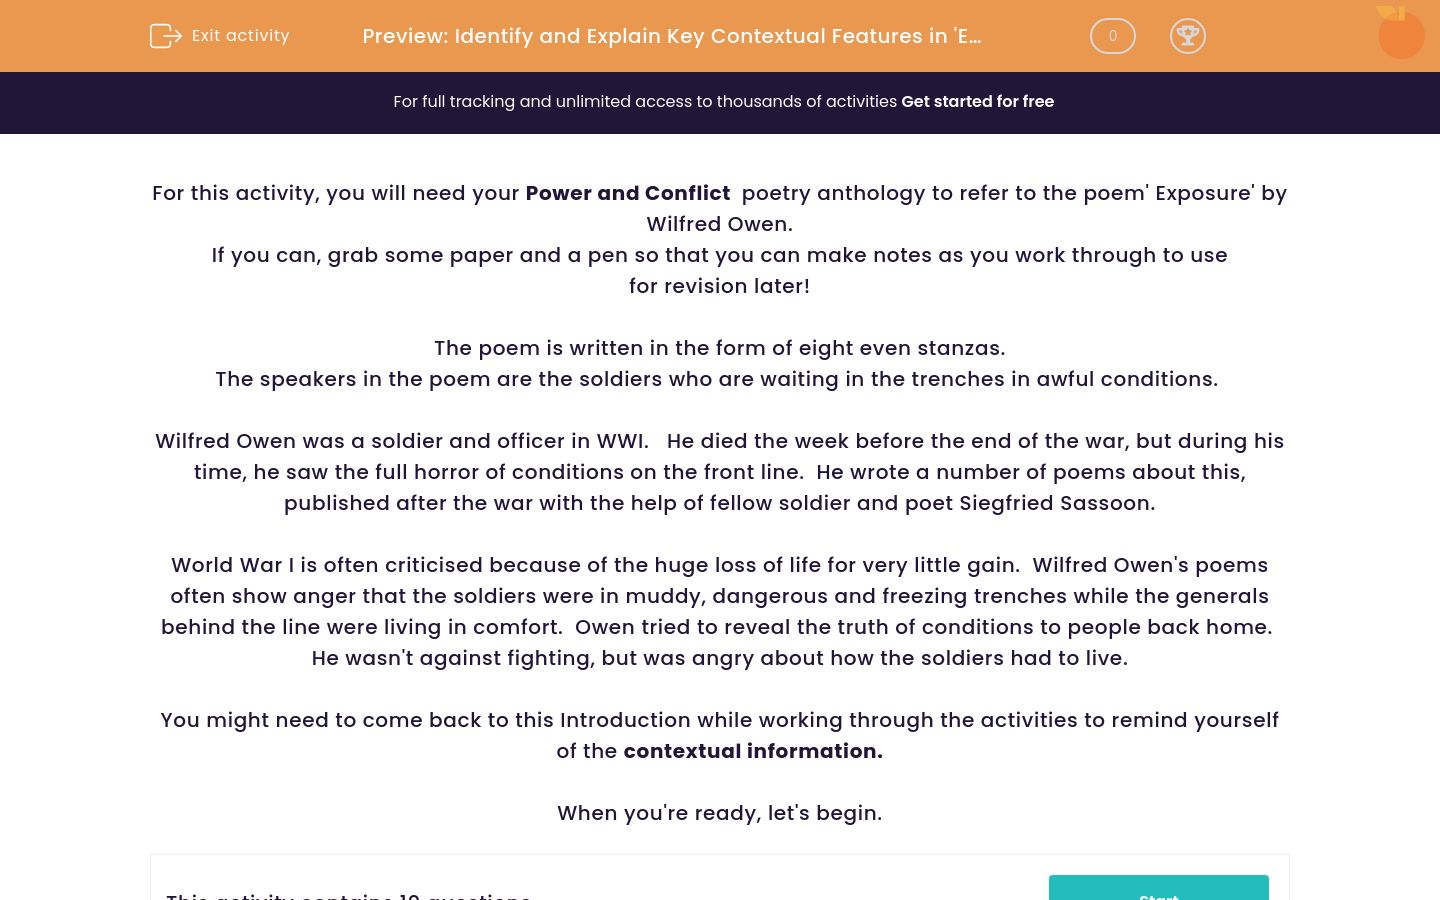 'Identify and Explain Key Contextual Features in 'Exposure' by Wilfred Owen' worksheet